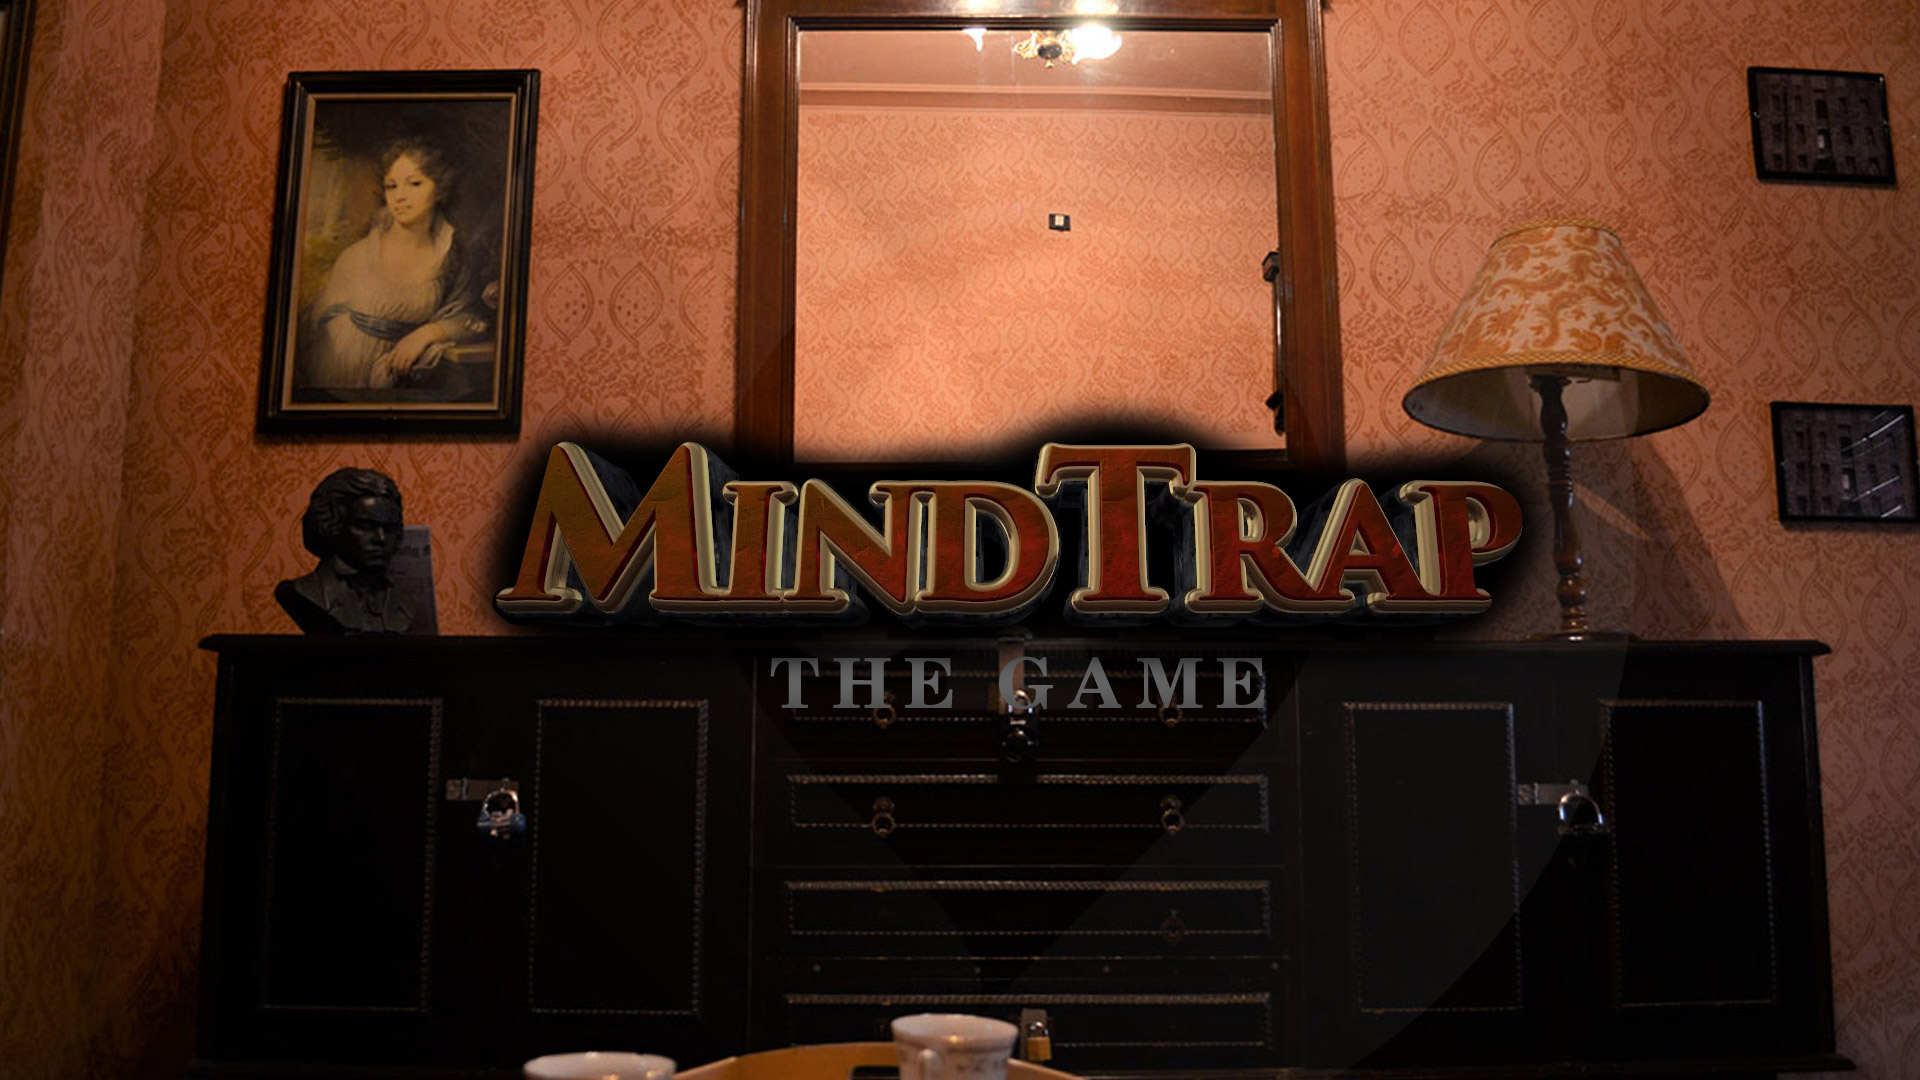 MINDTRAP - THE GAME